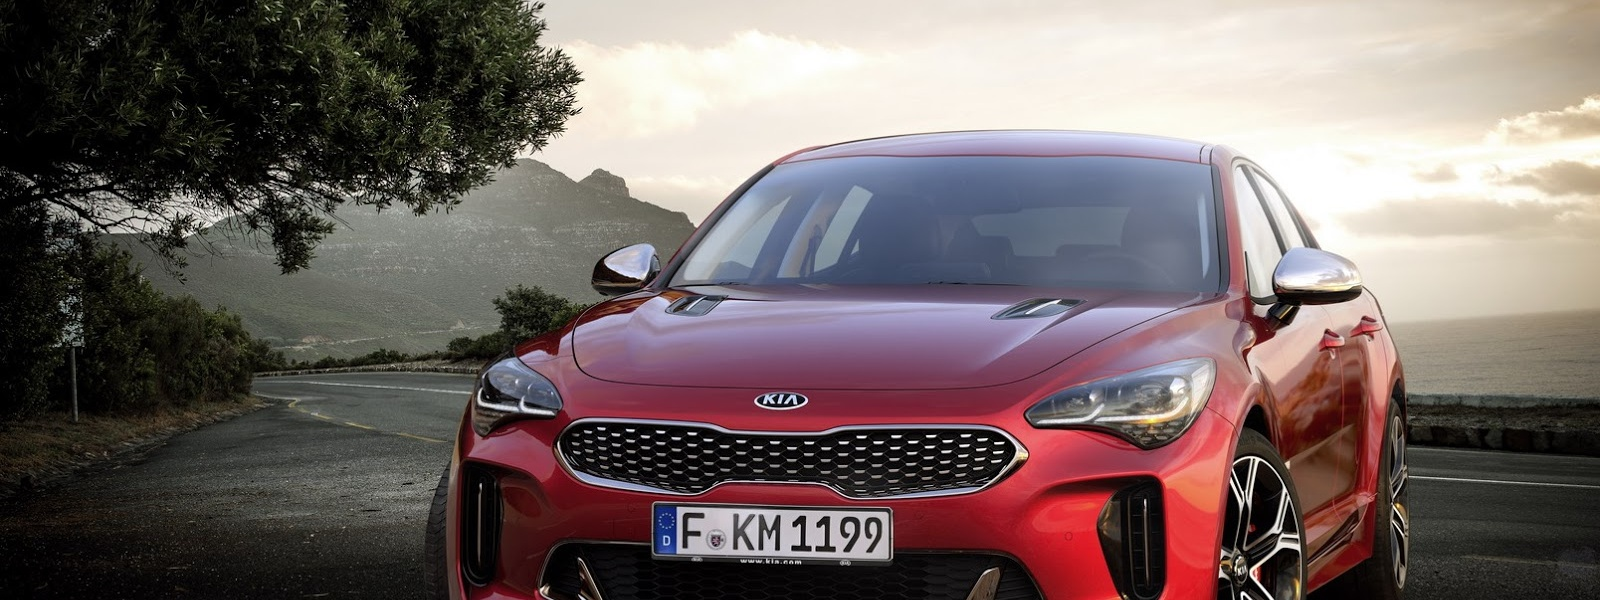 Kia Stinger won't get Kia badge in Korea -3.jpg